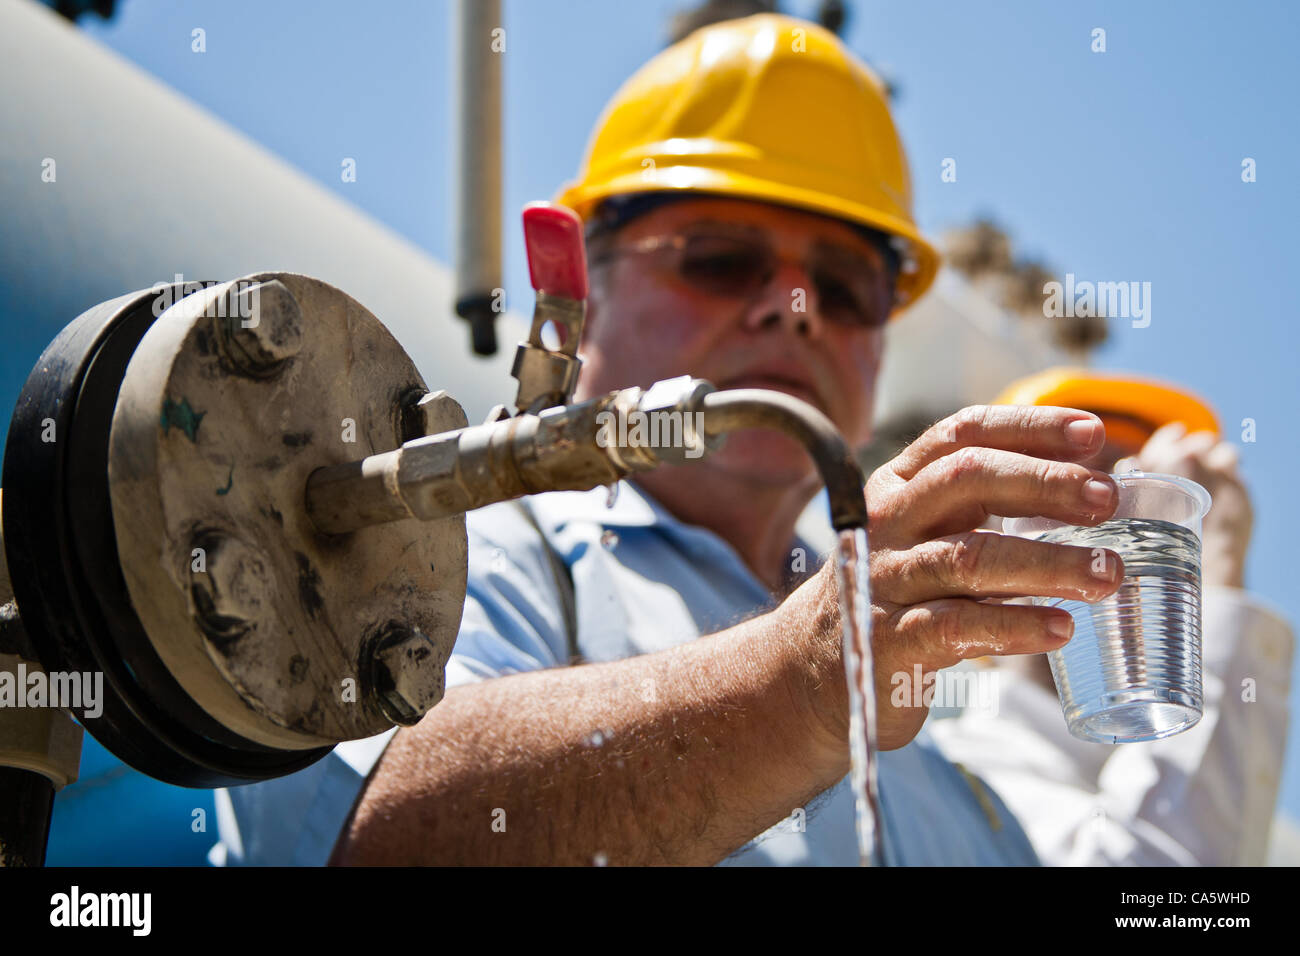 desalination in the middle east Transforming power and water desalination delivery  the middle east and  and integrating renewable energy with desalination technologies hold significant.